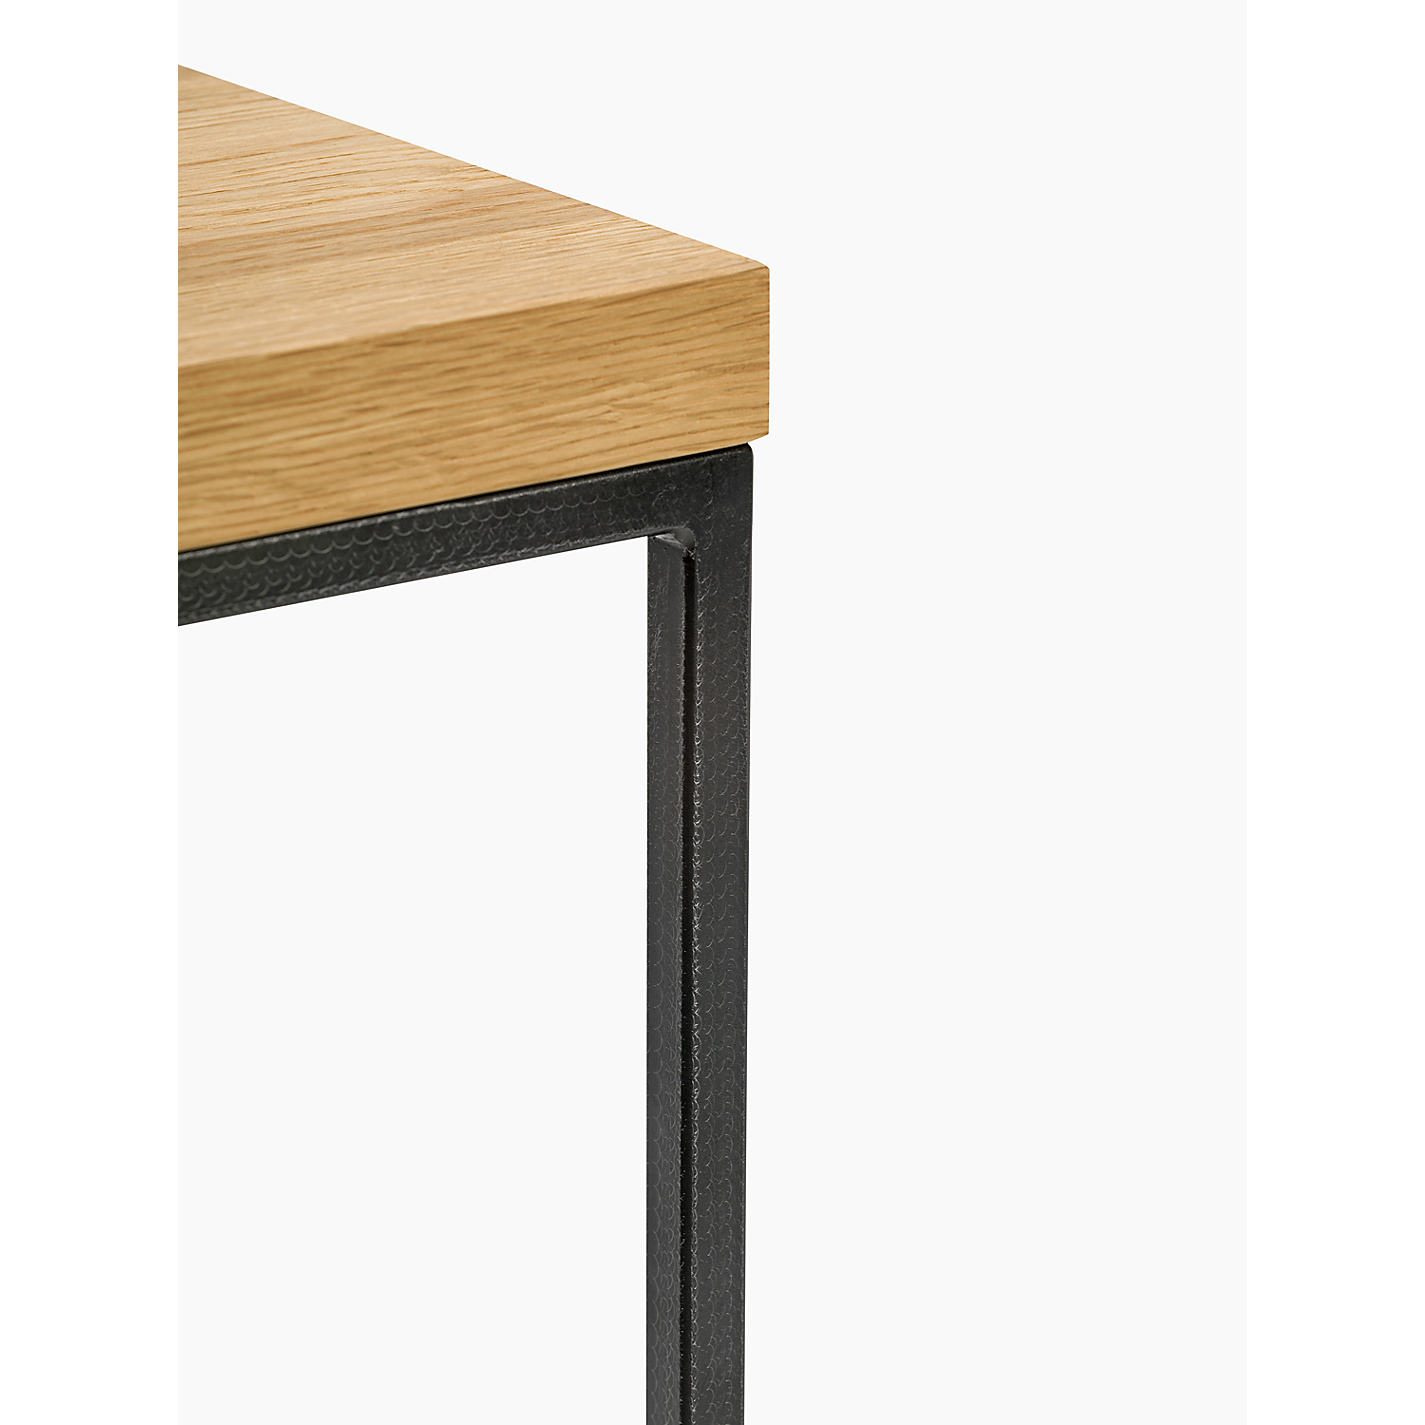 Buy john lewis calia console table john lewis buy john lewis calia console table online at johnlewis geotapseo Image collections